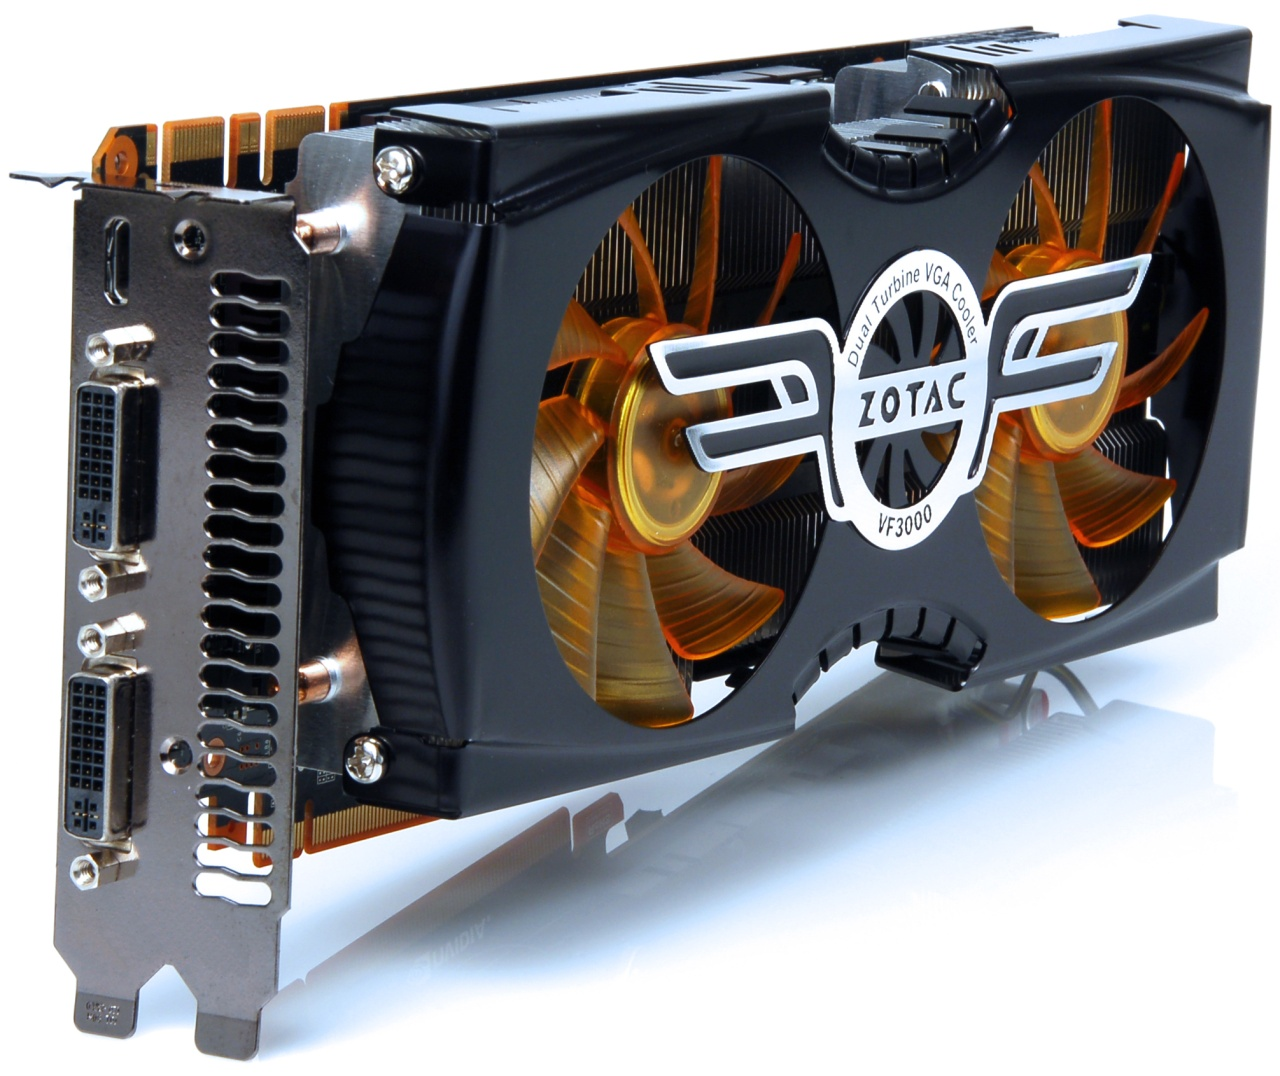 Zotac GTX 480 AMP! Edition VideoCard Review